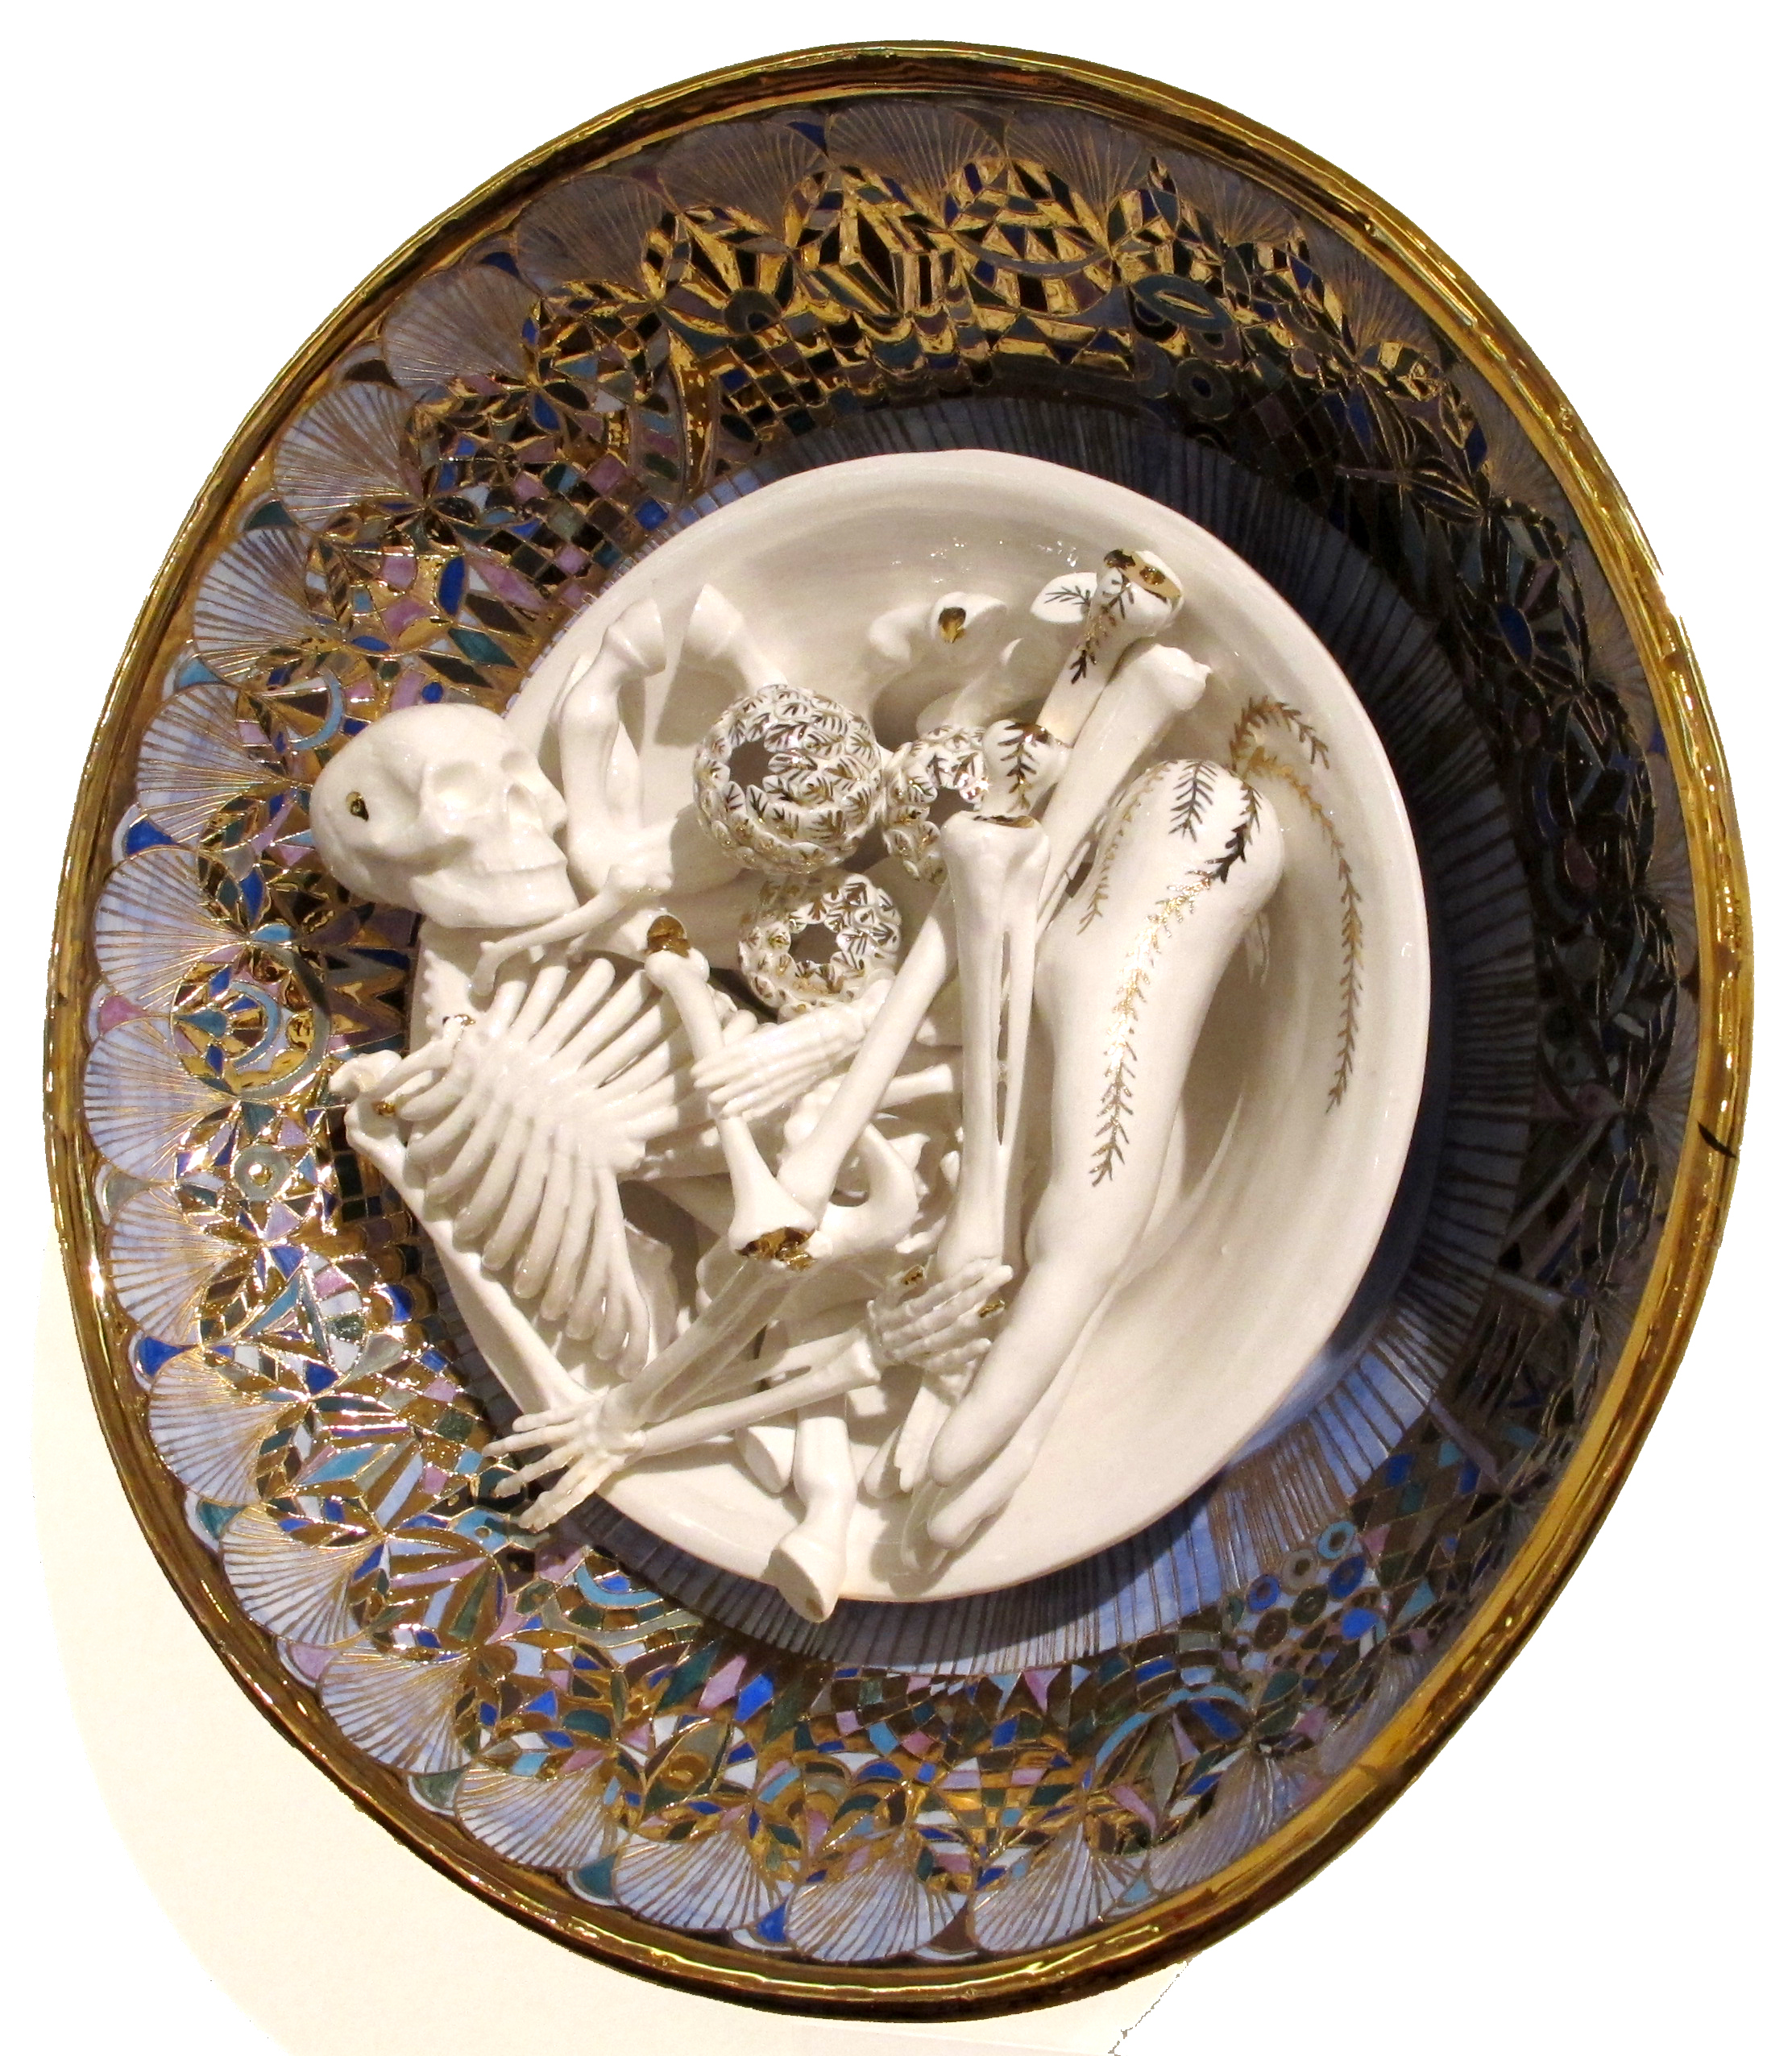 YHL_Skull and Hand plate_Porcelain 40x40cm side.jpg